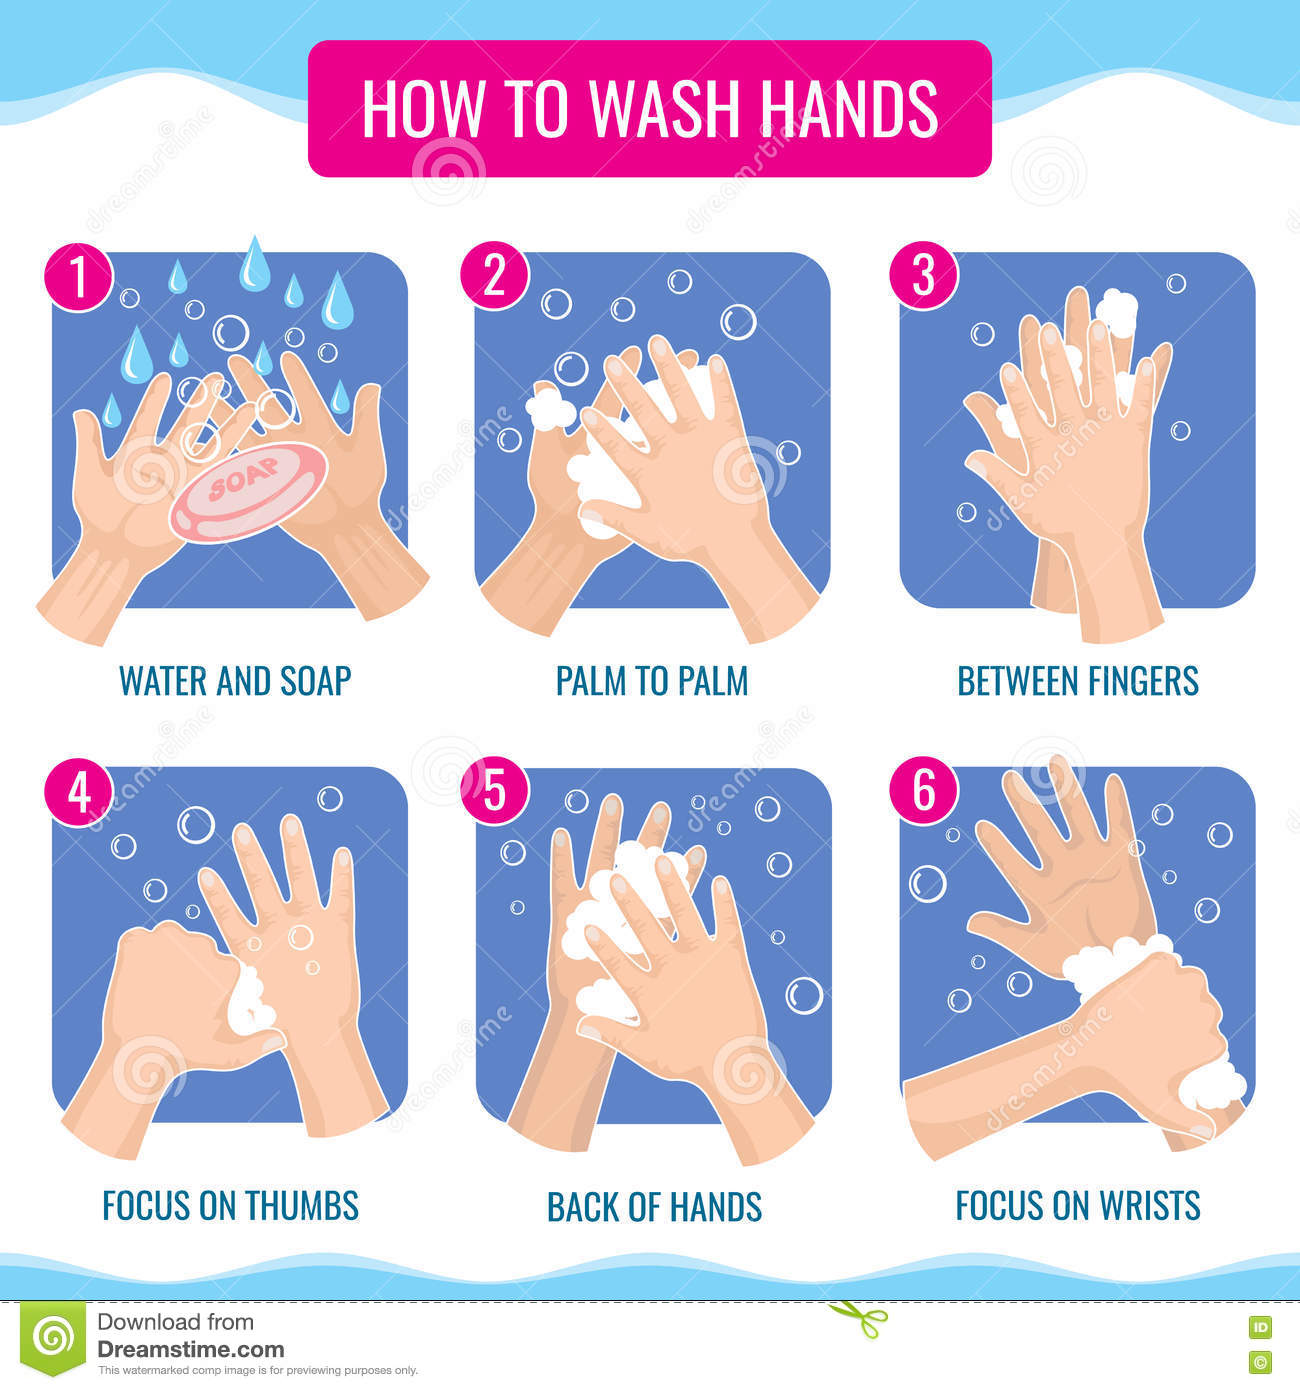 Dirty hands washing properly medical hygiene vector infographic